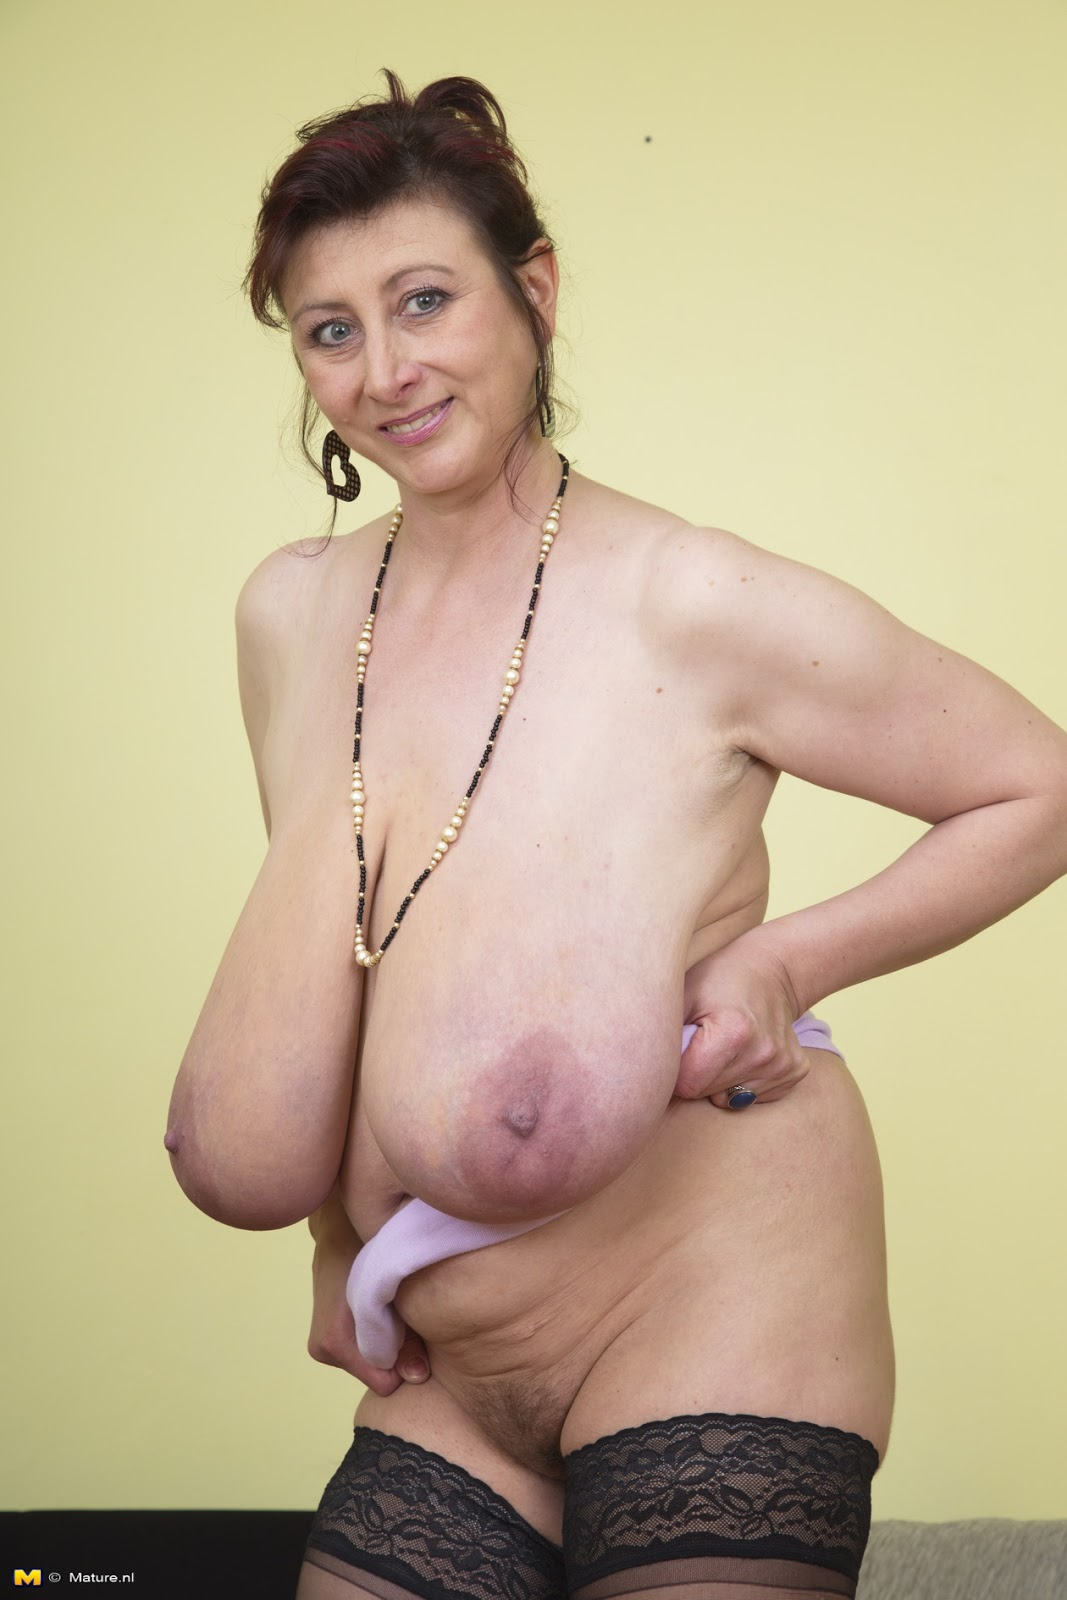 Archiveoffoldwomenblogspotcom Huge Mature Boobs Of Jana P-3123